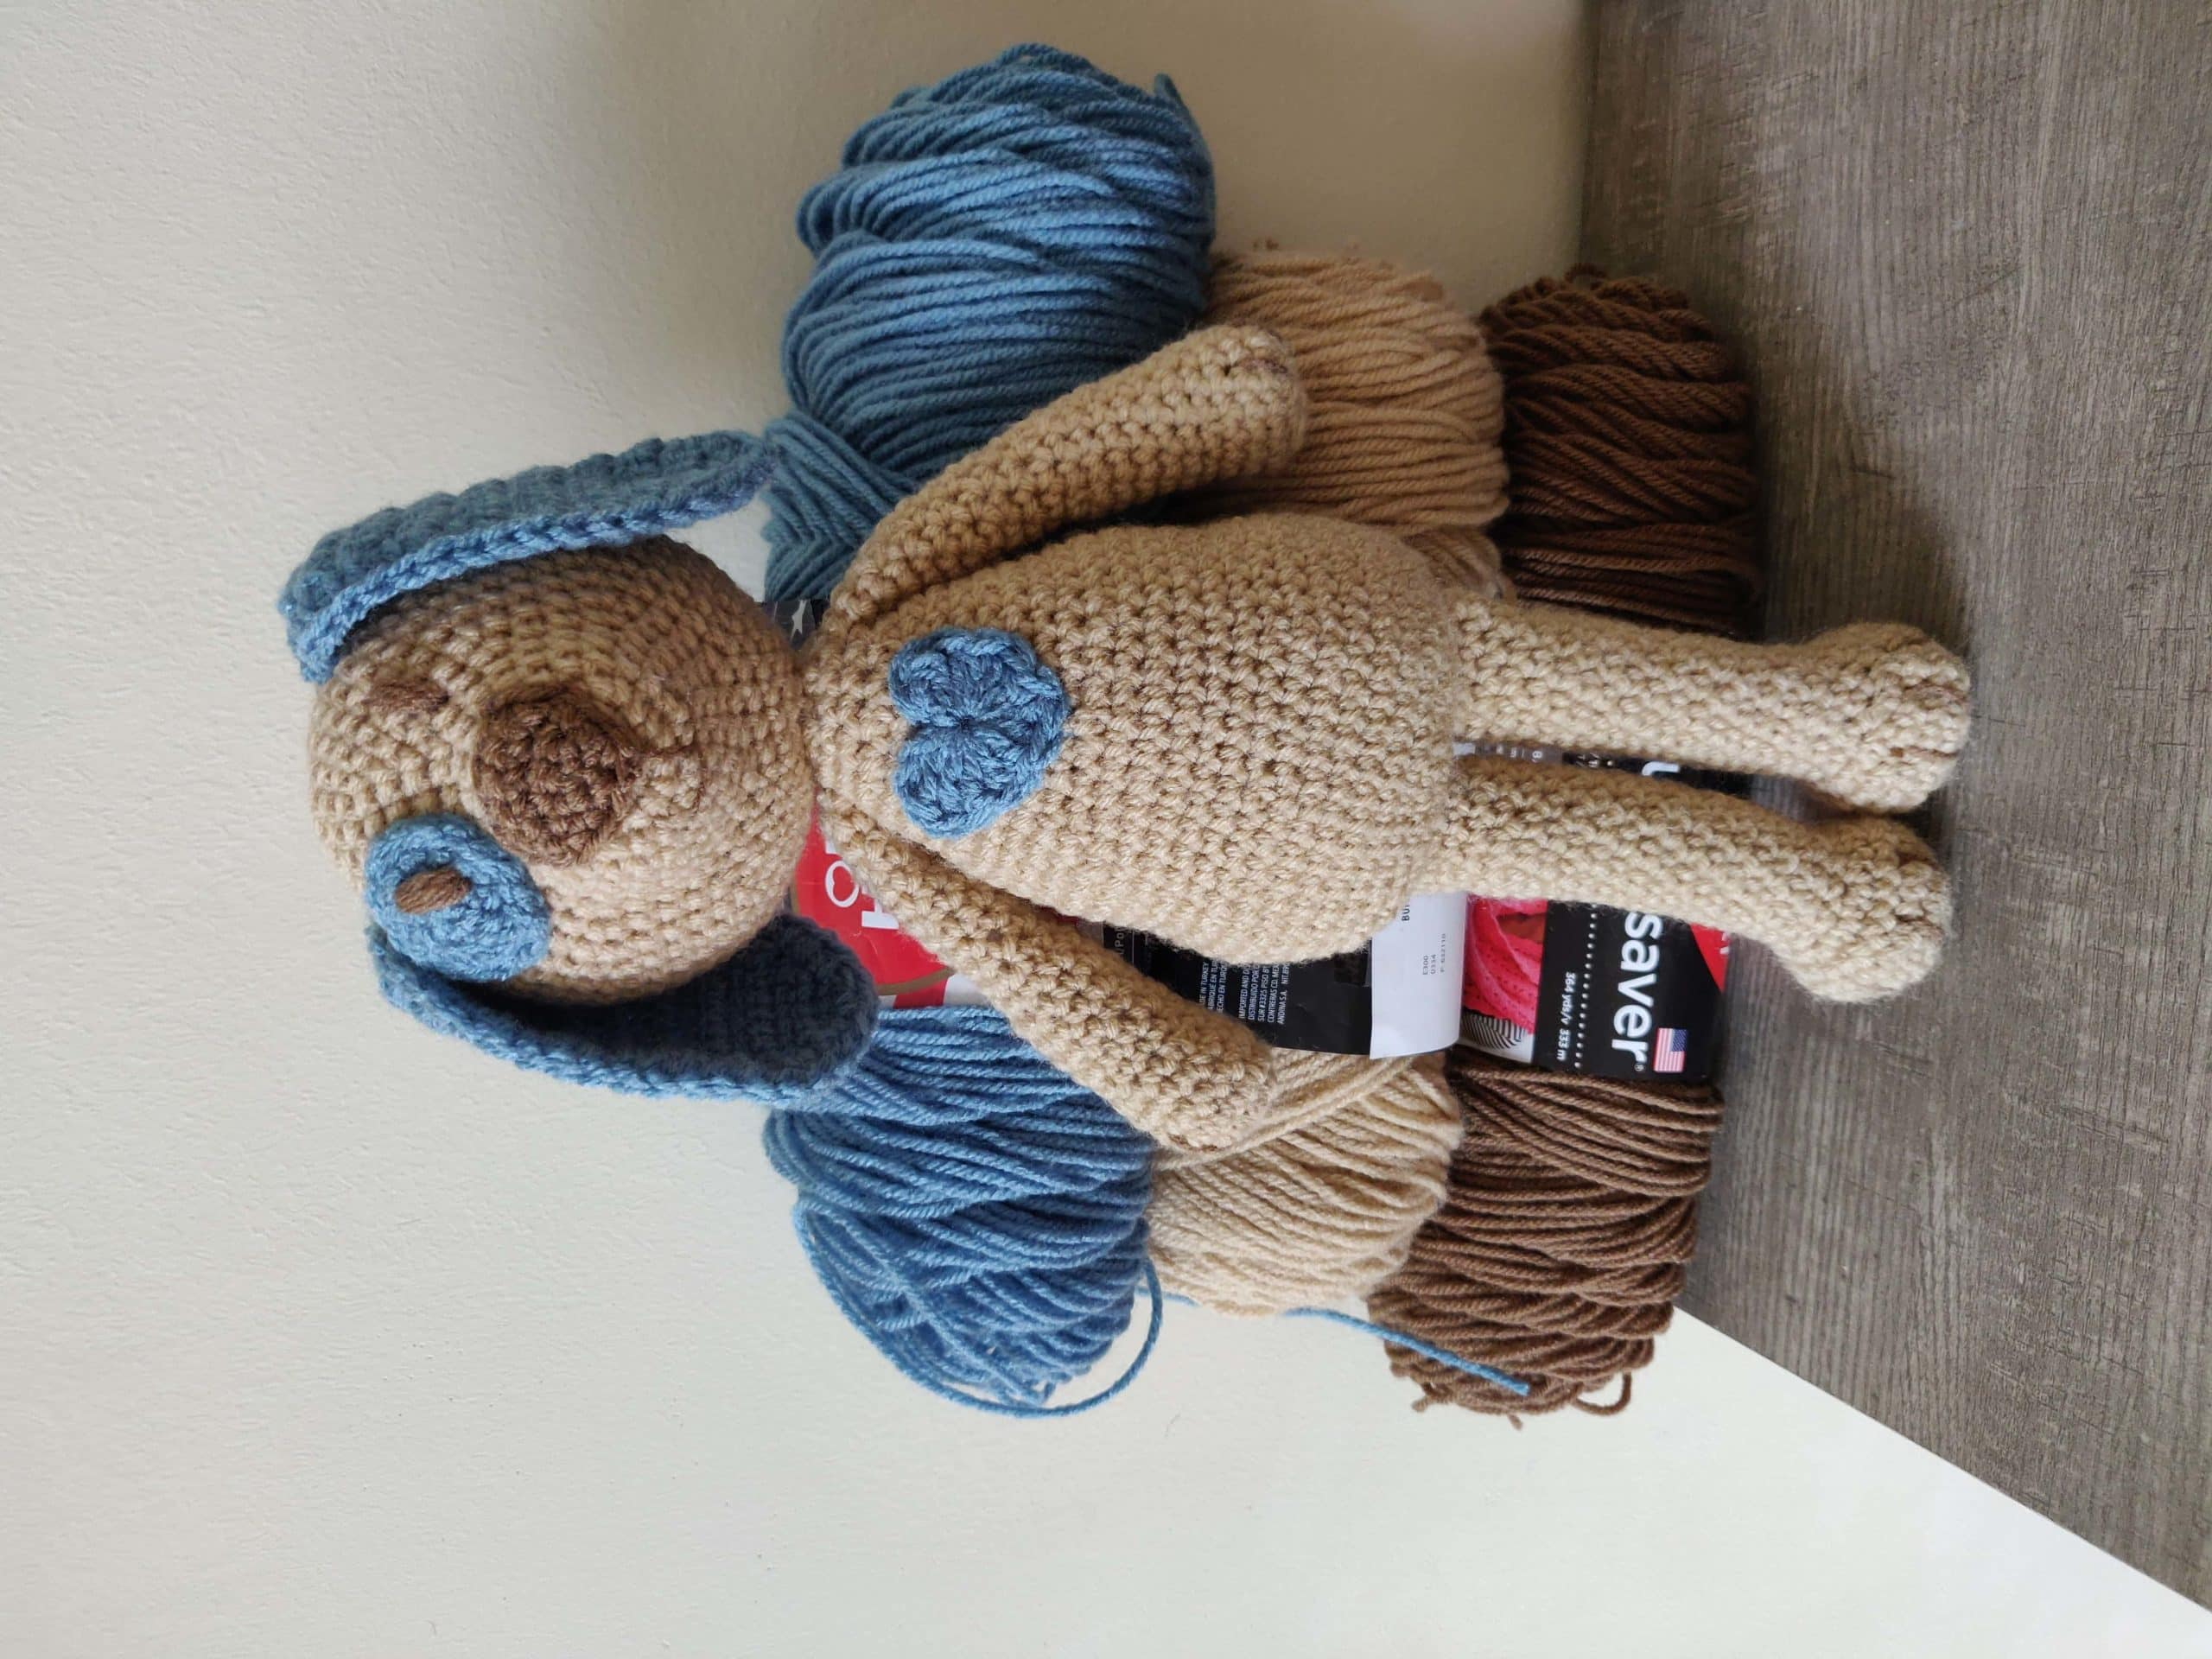 Crochet dog with brown and blue. Yarn in the back.